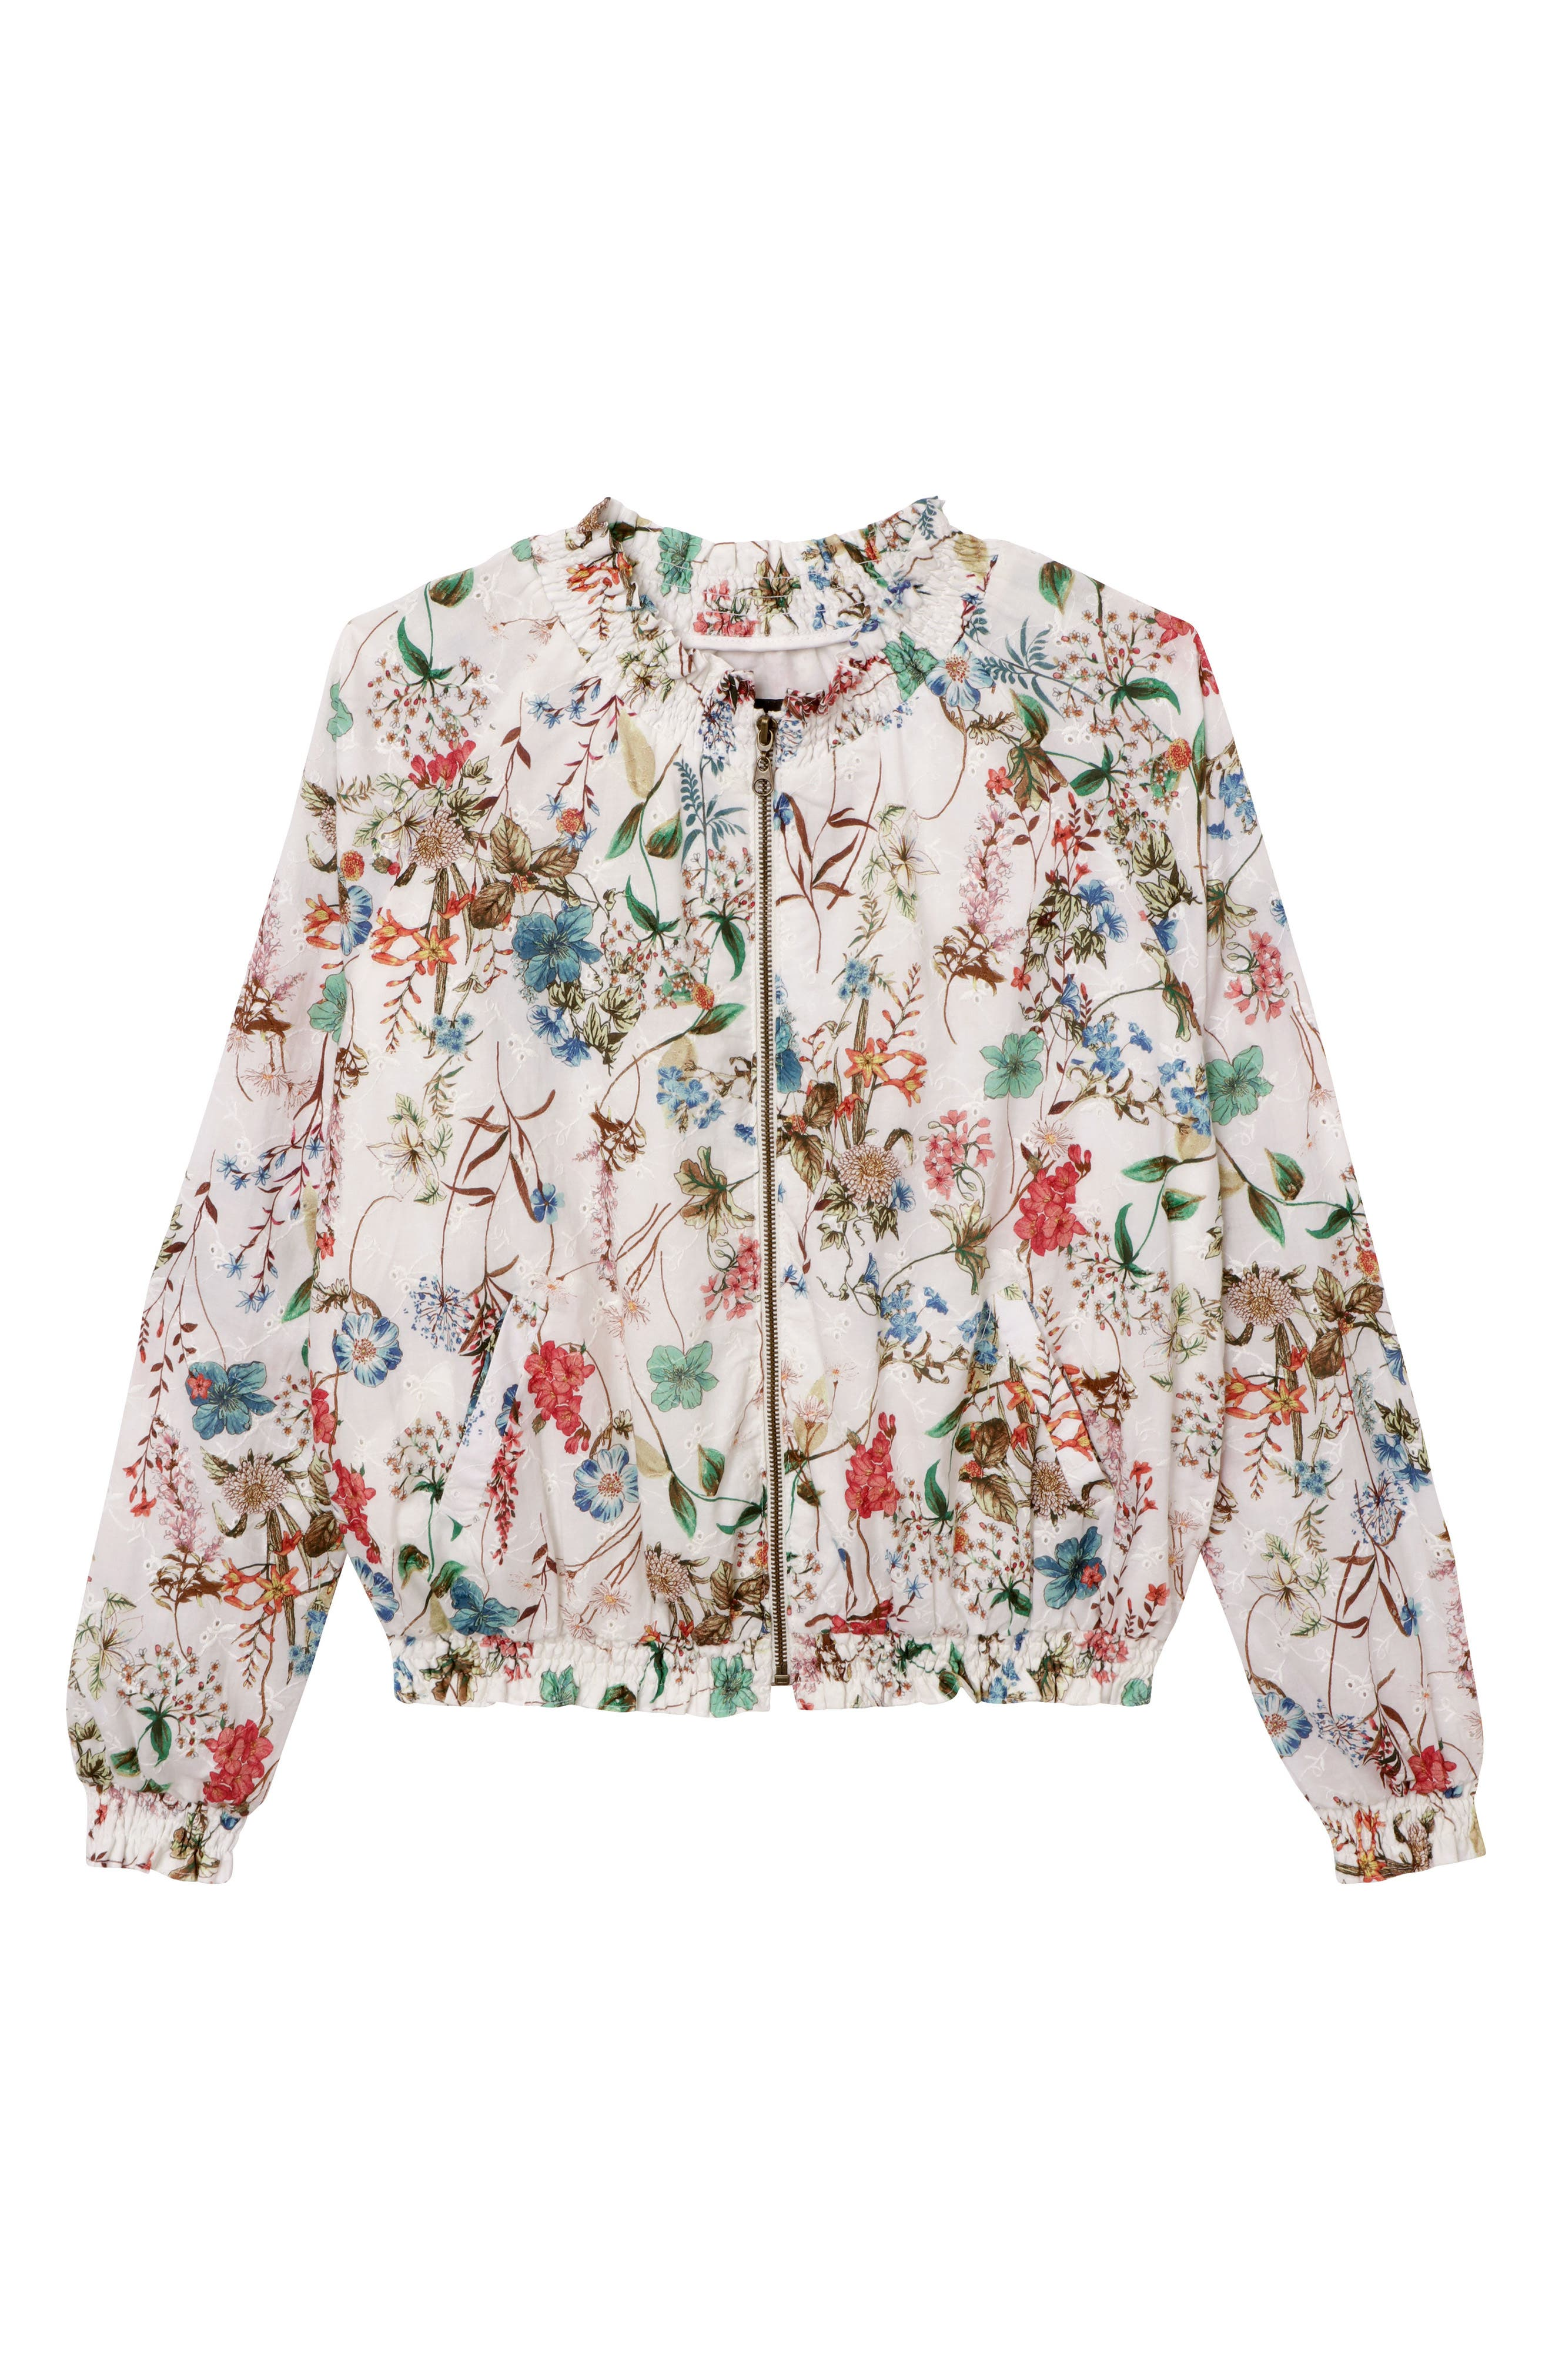 In Bloom Eyelet Bomber Jacket,                             Alternate thumbnail 3, color,                             CHEERFUL NATURE